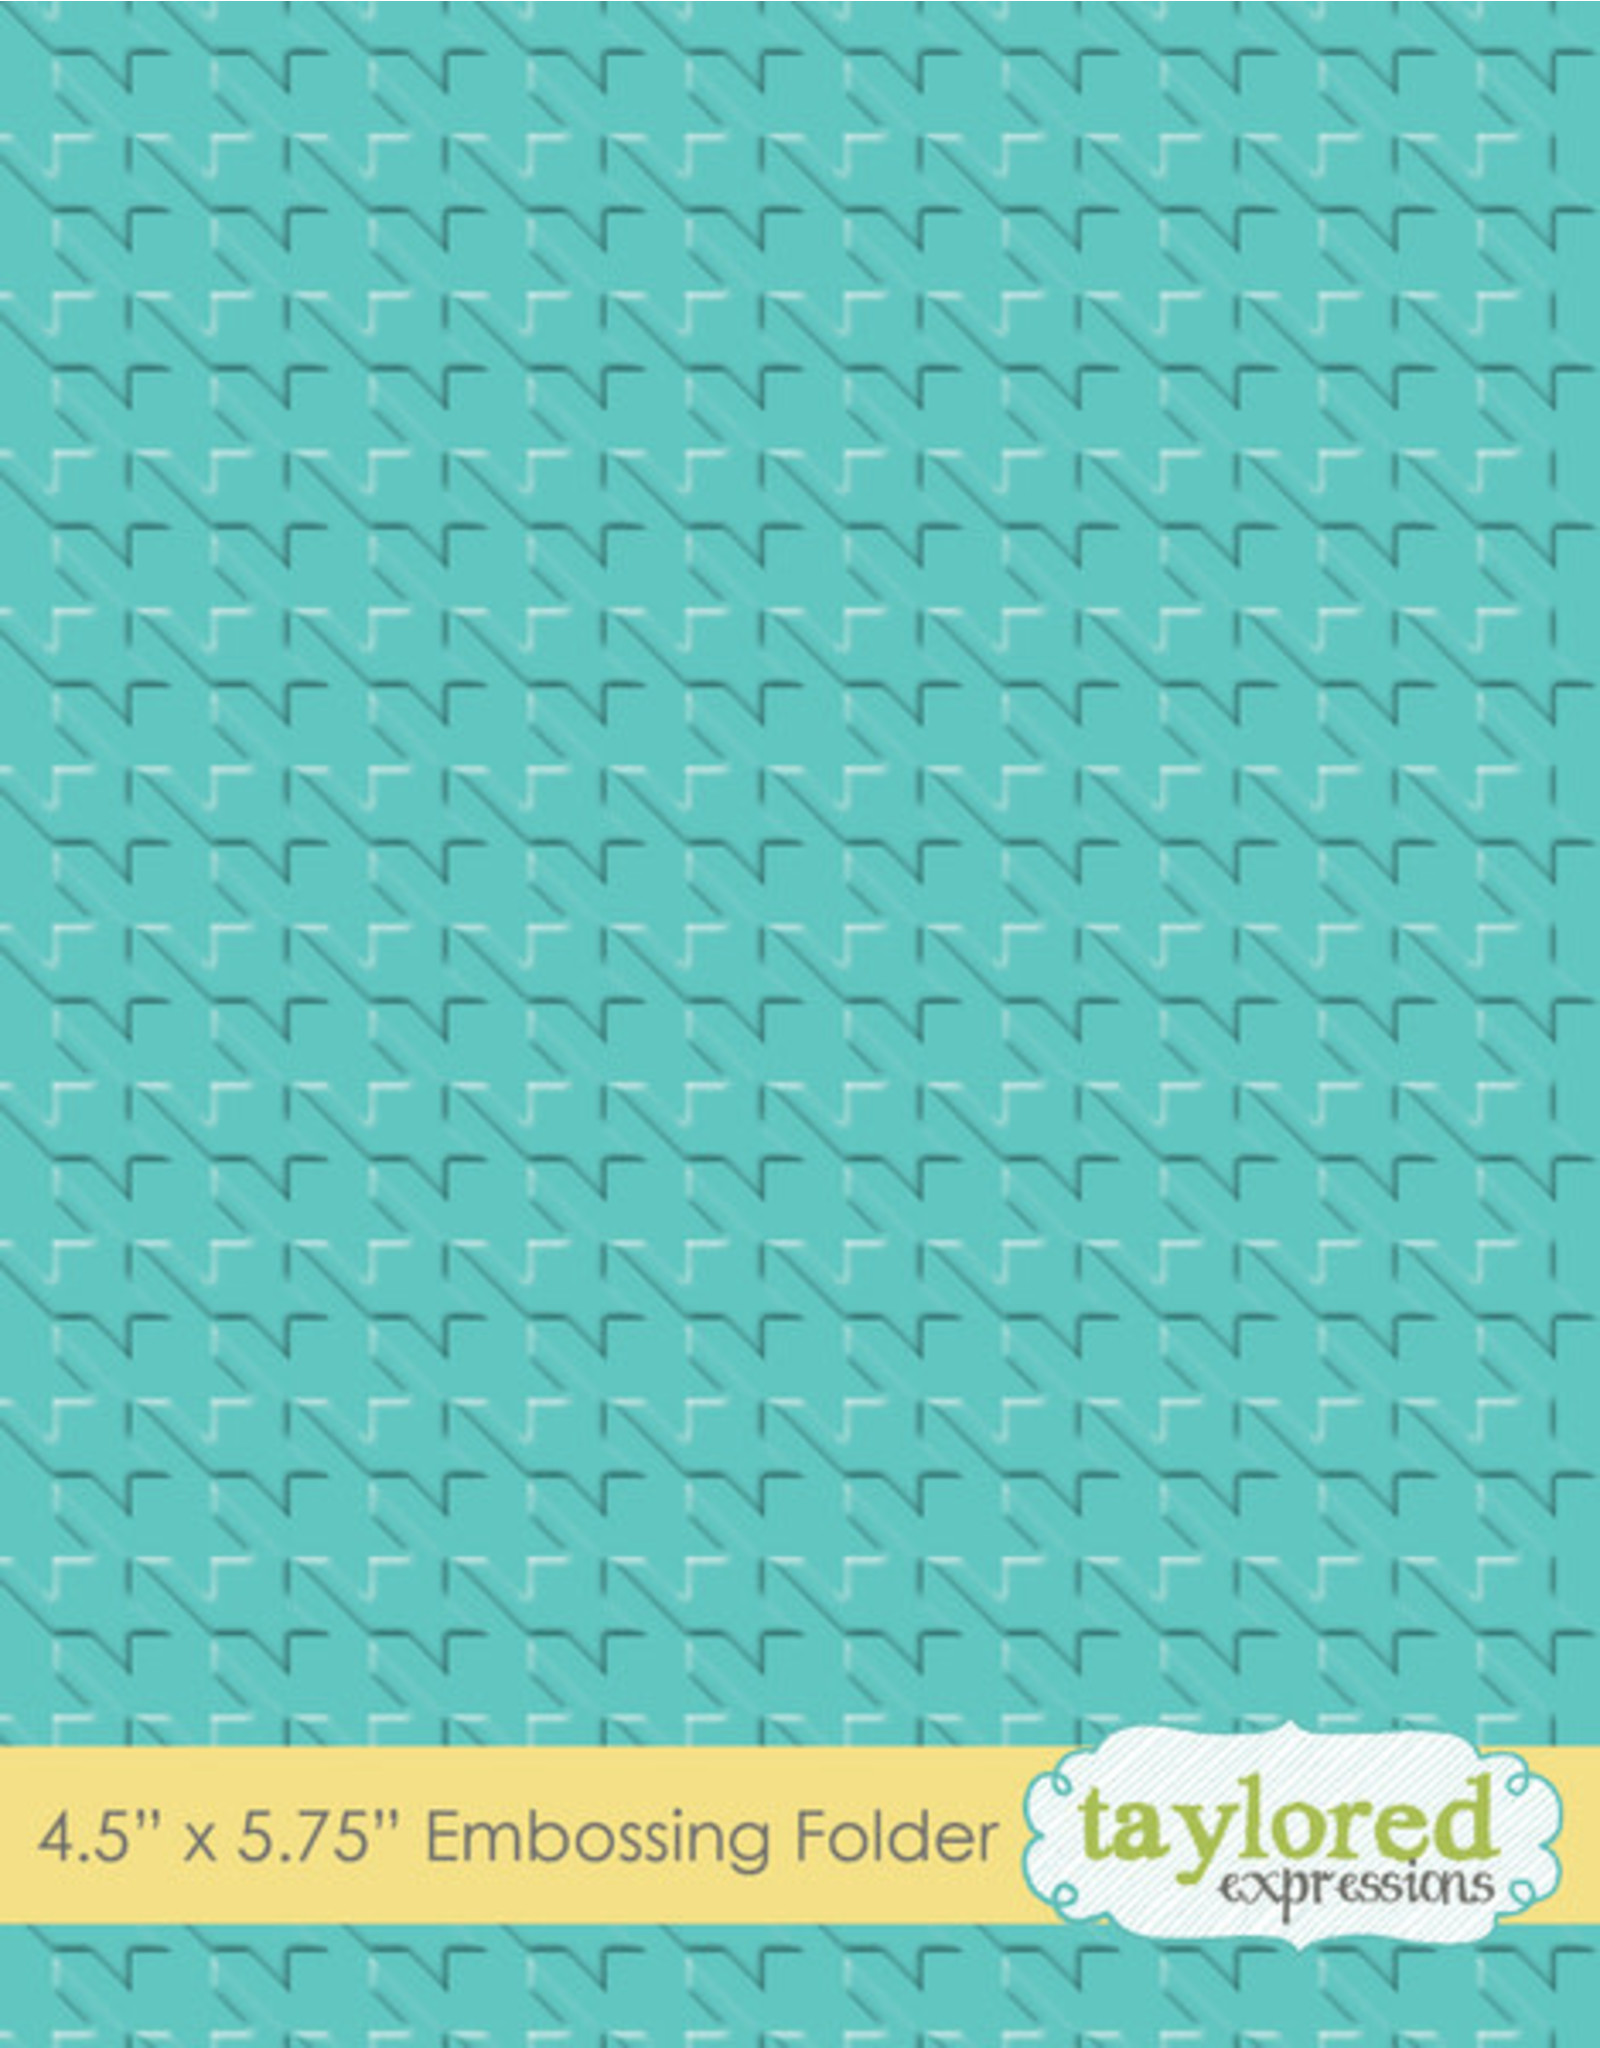 Taylored Expressions Houndstooth - Embossing Folder